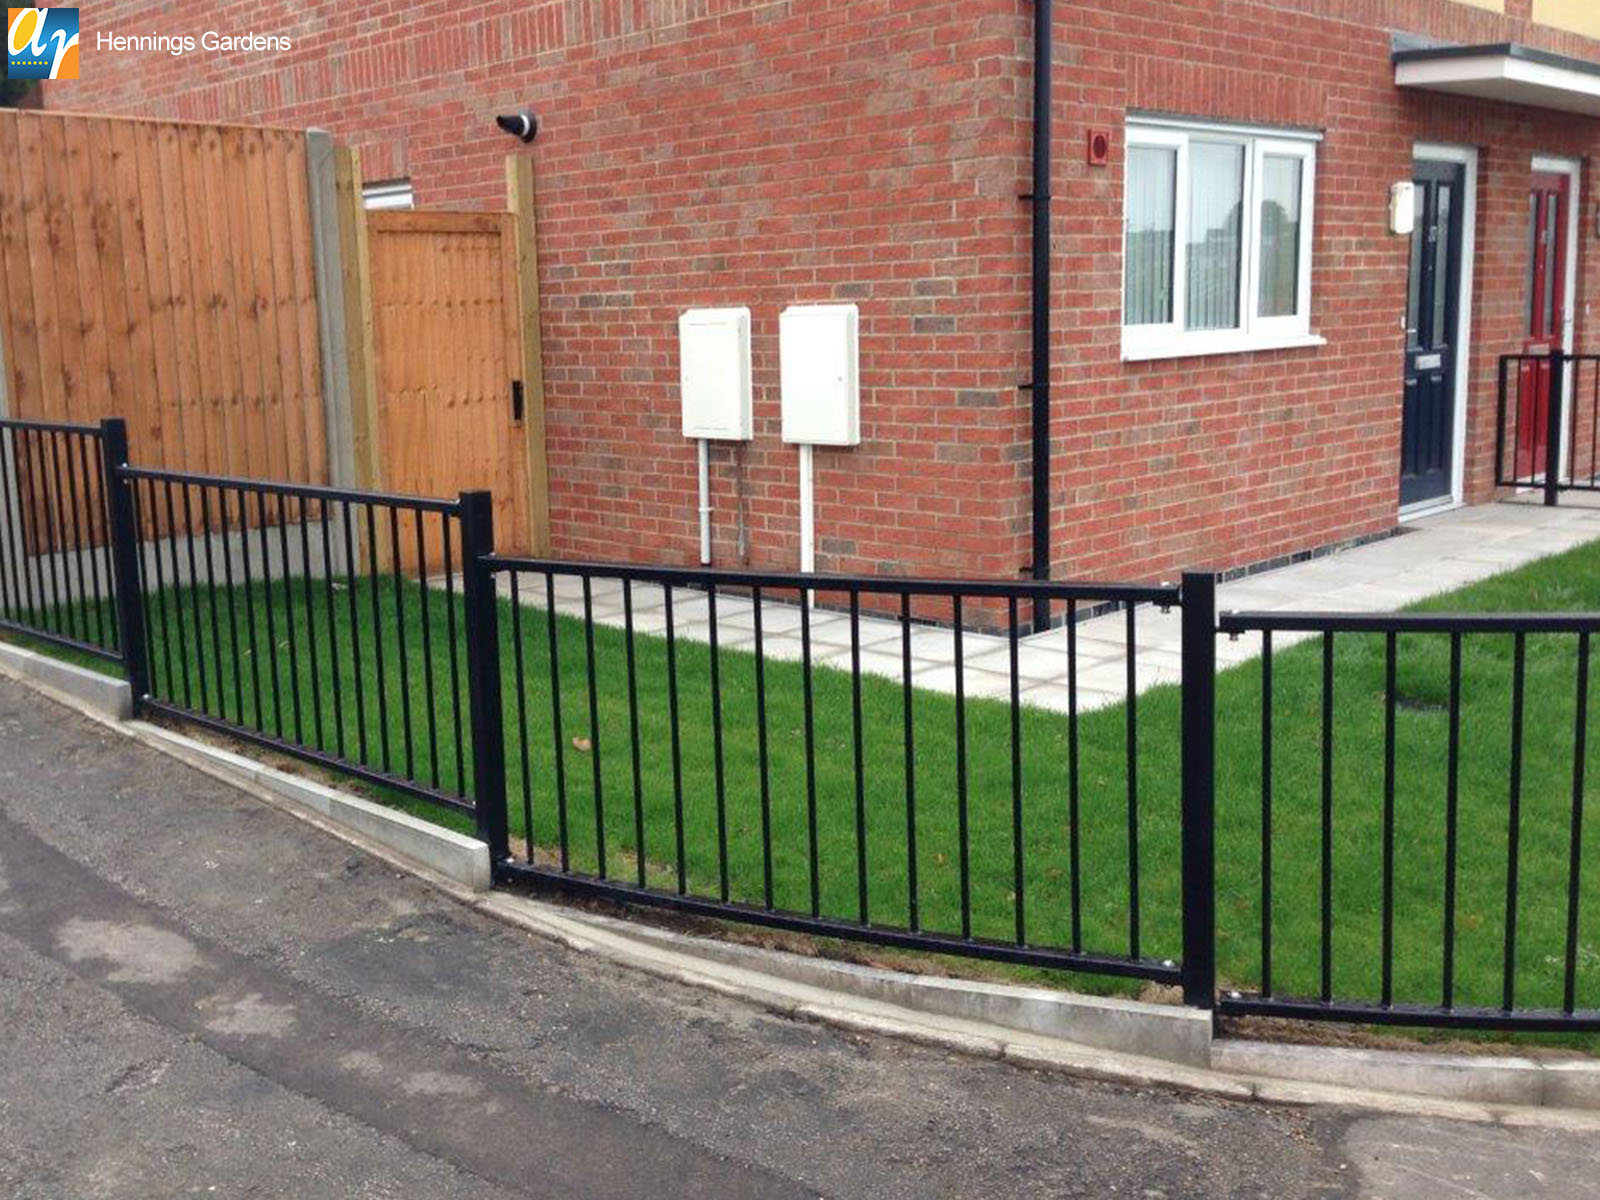 Hennings Gardens flat top metal railings